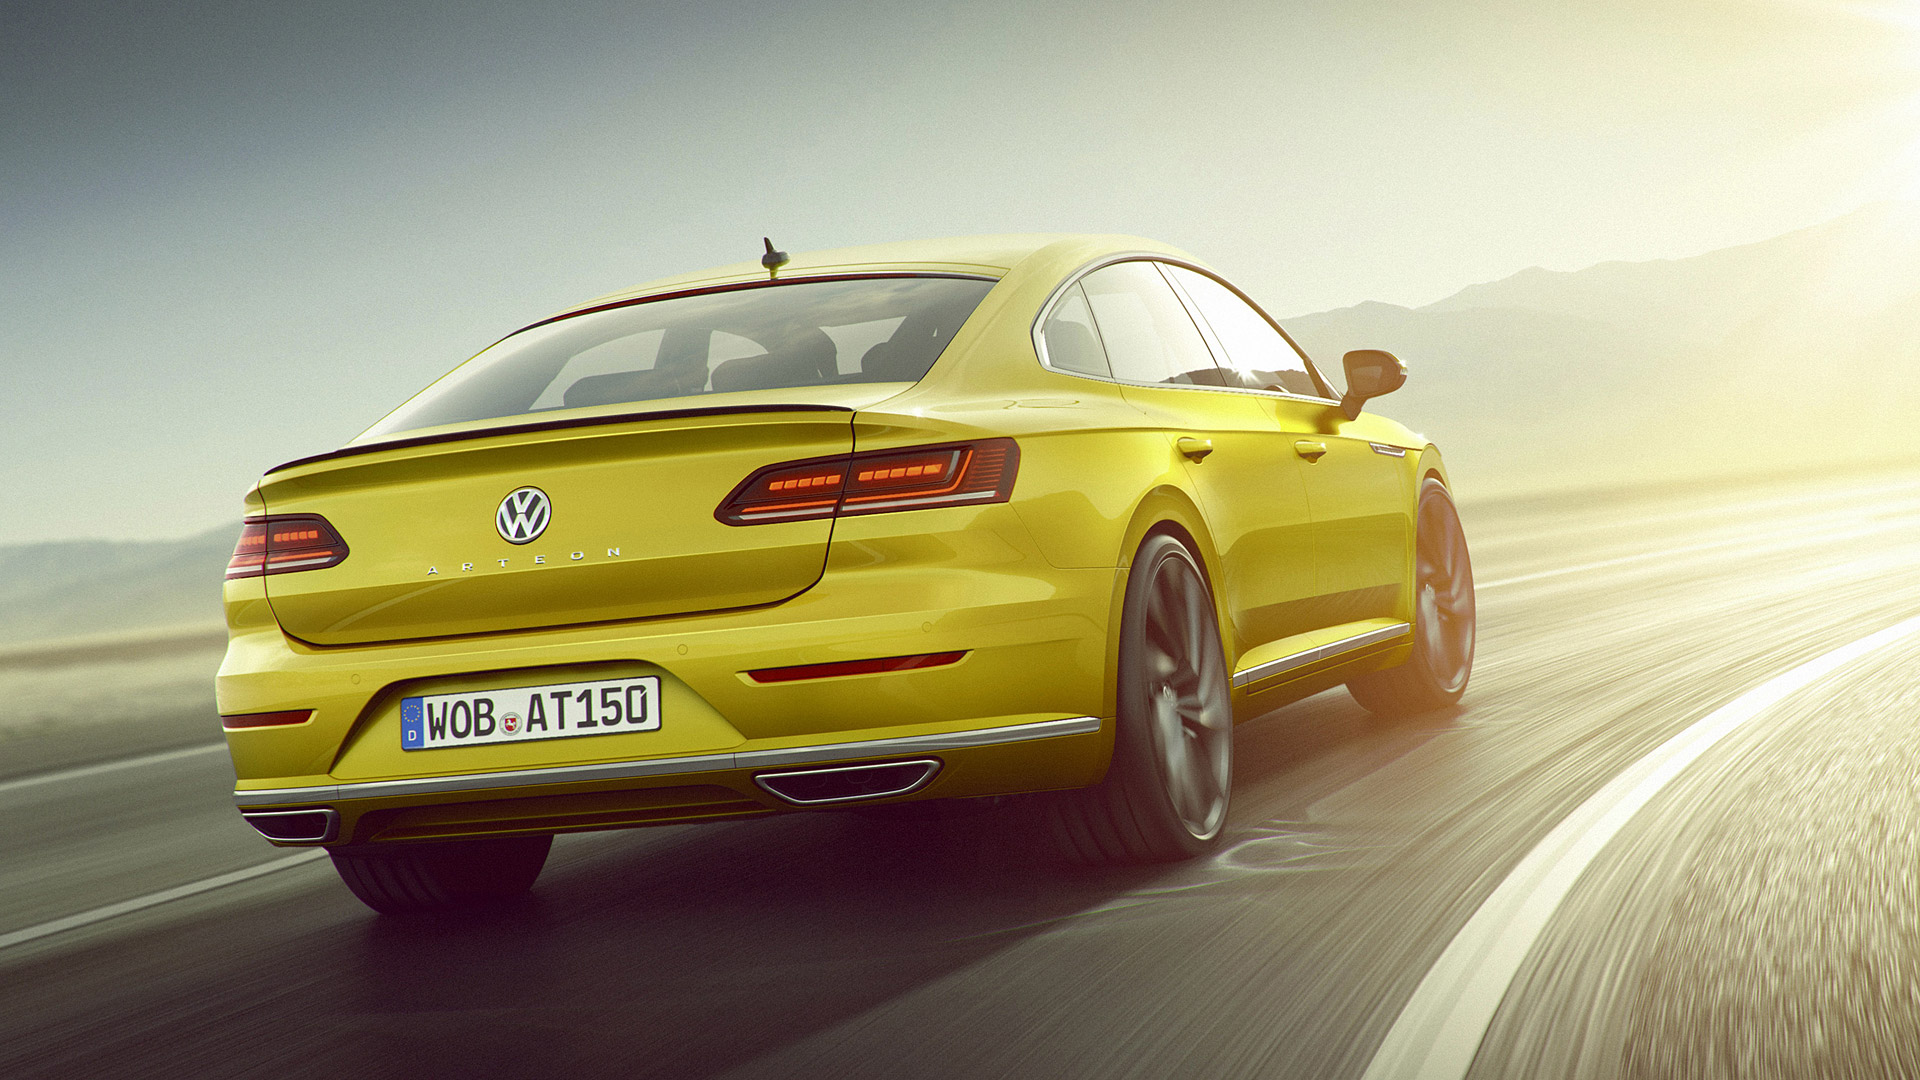 1920x1080 - Volkswagen Arteon Wallpapers 25